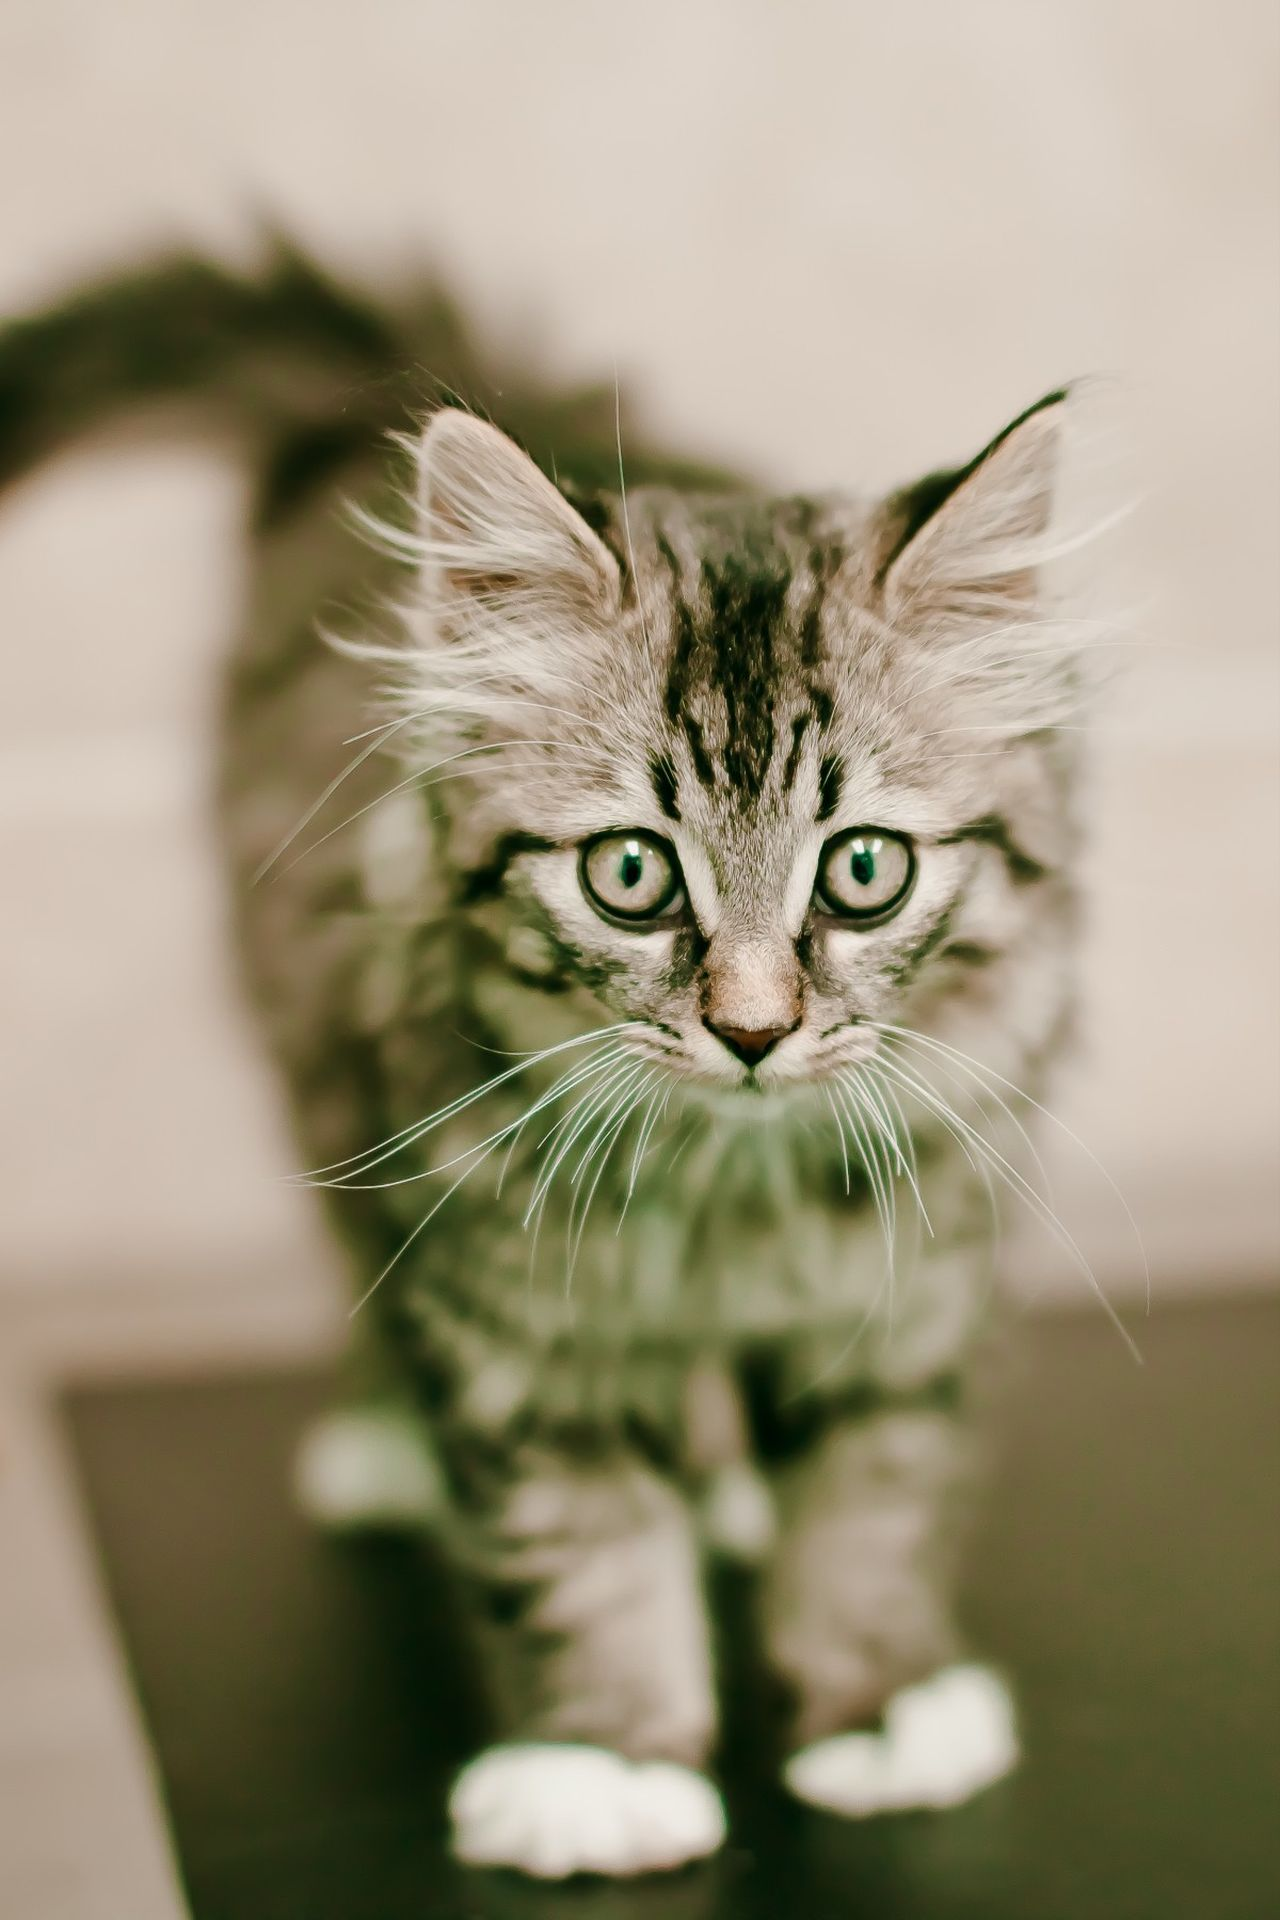 Beautiful stock photos of kitty, Animal Themes, Auto Post Production Filter, Cat, Domestic Animals